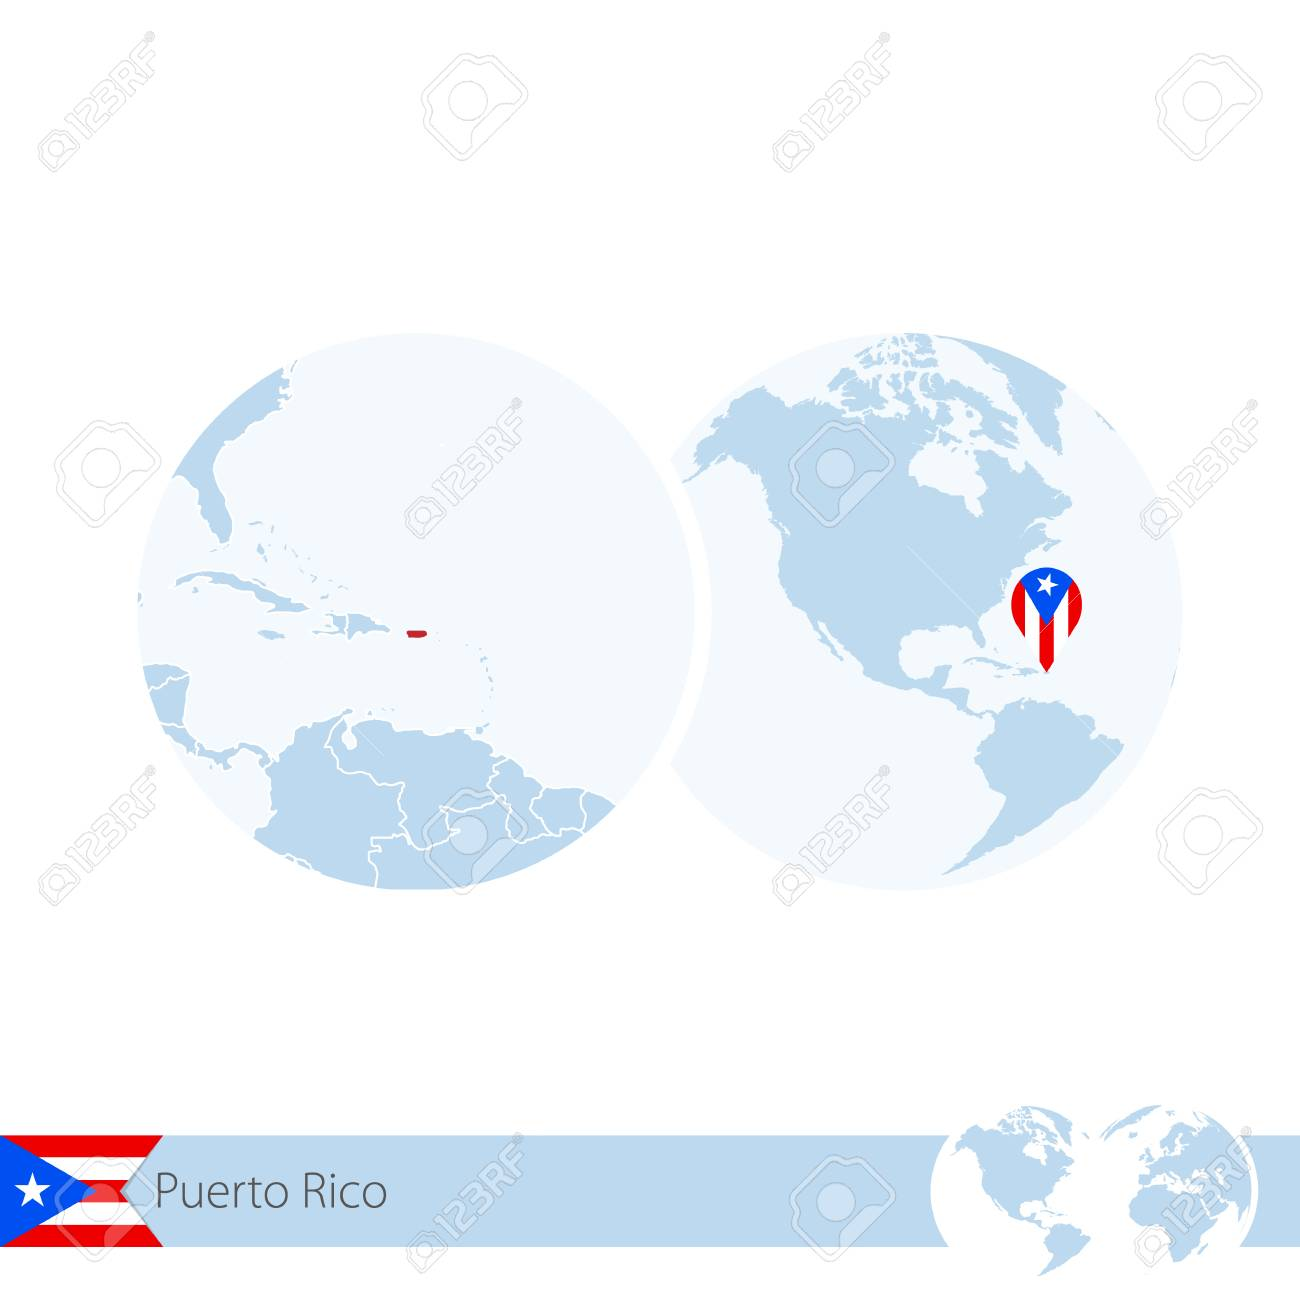 Puerto Rico on world globe with flag and regional map of Puerto..